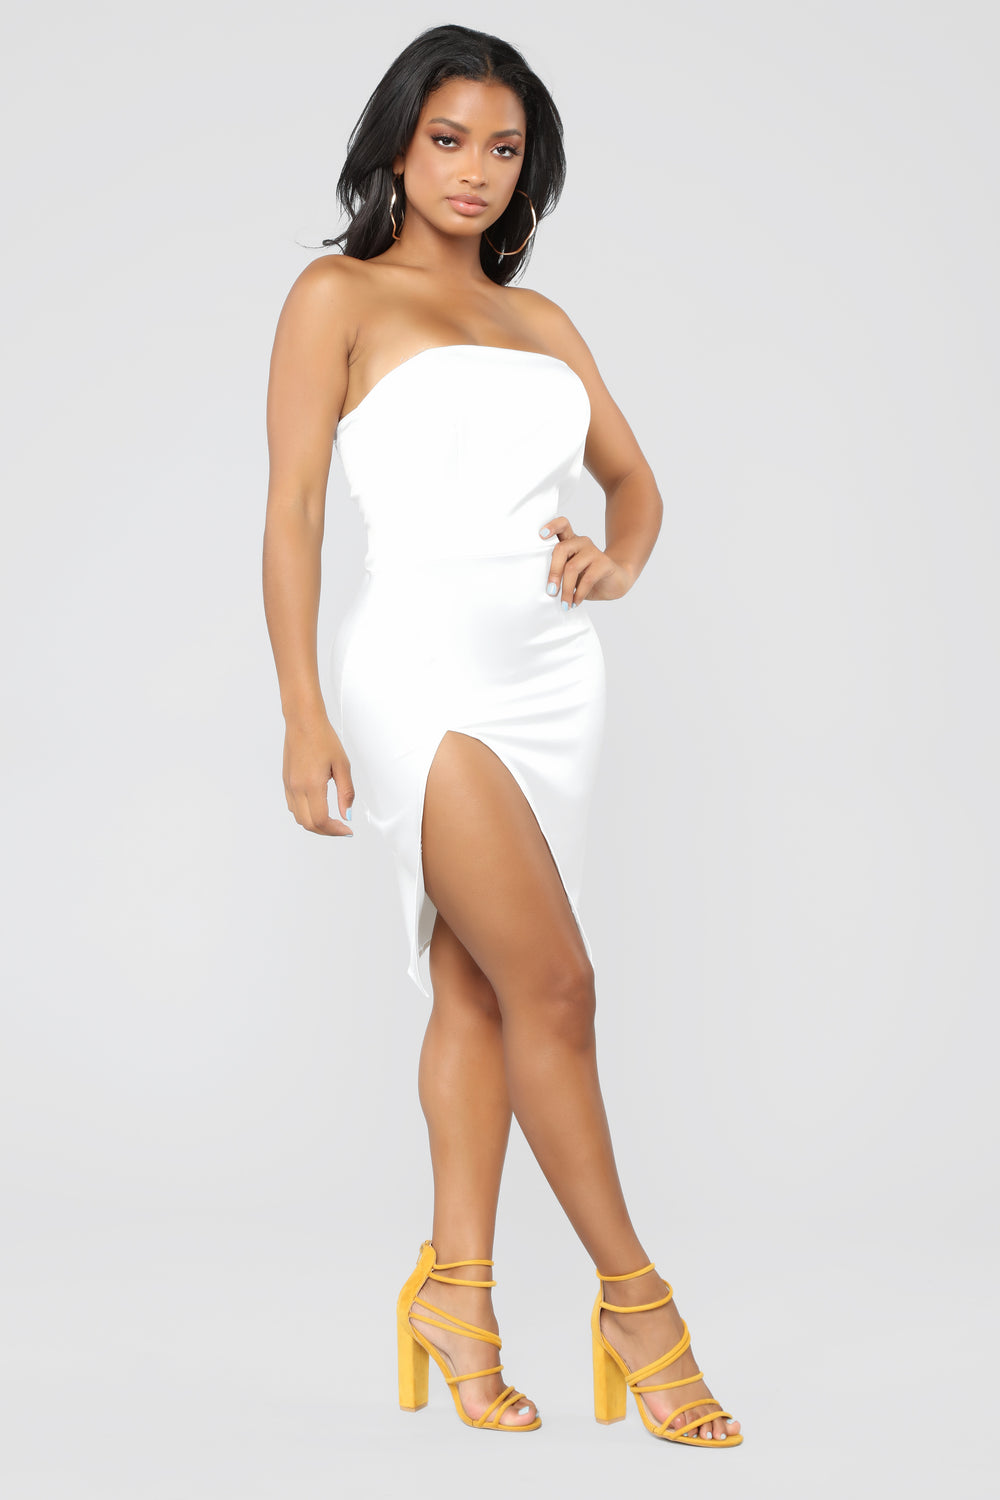 Perfect Pose Satin Dress - White